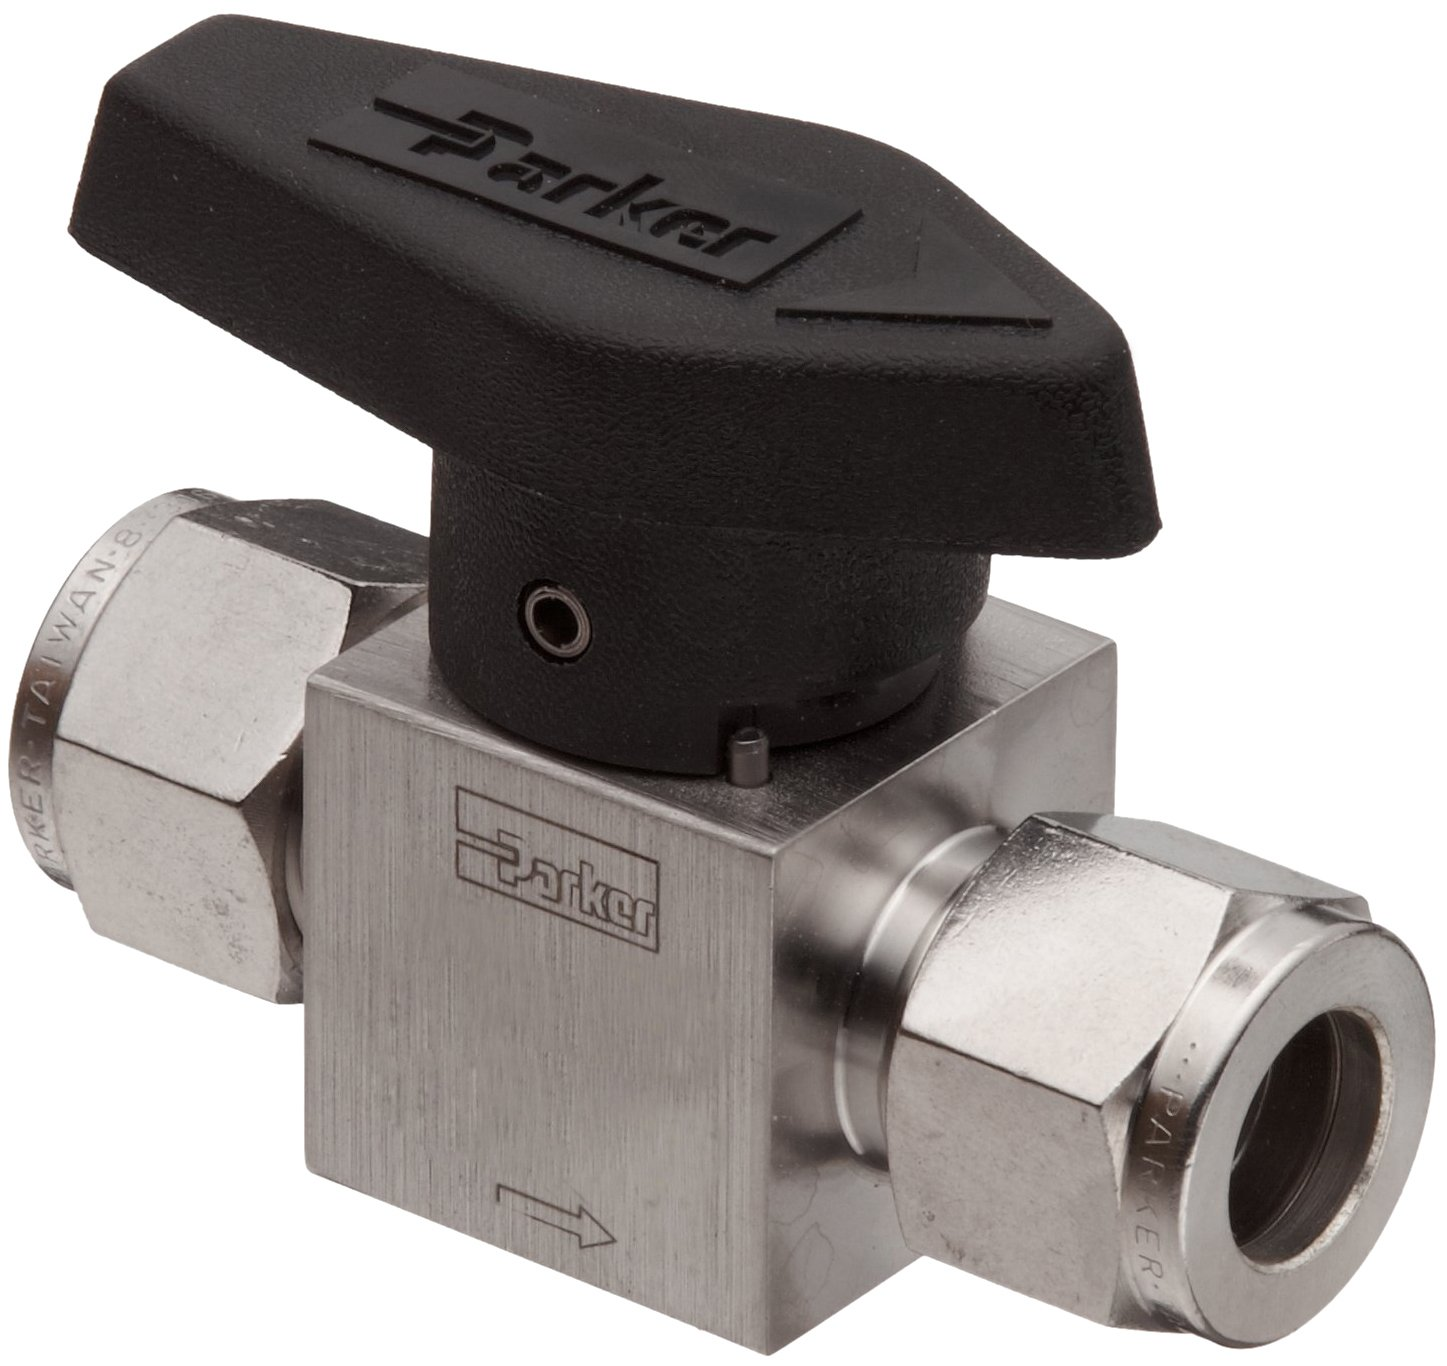 Parker 316 Stainless Steel Rotary Process Plug Valve with Fluorocarbon Rubber Seal and PTFE Back-Up Ring, 1/4'' A-LOK Compression Inlet/Outlet Port, 3000 psi by Parker (Image #1)